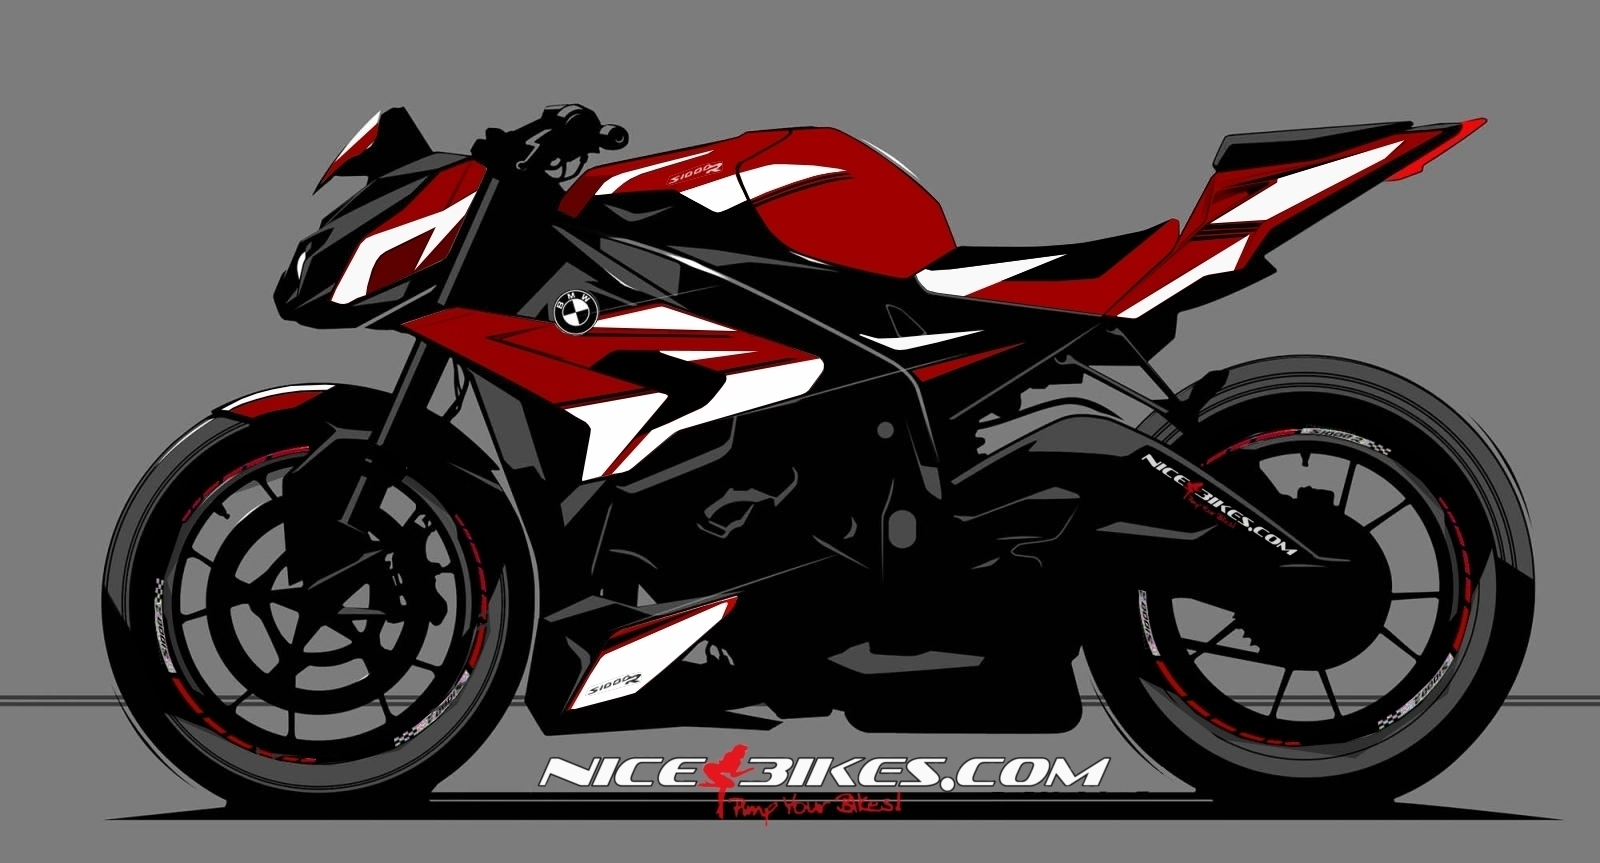 dekorsatz s1000r edition wei f r rote maschine nice bikes shop. Black Bedroom Furniture Sets. Home Design Ideas